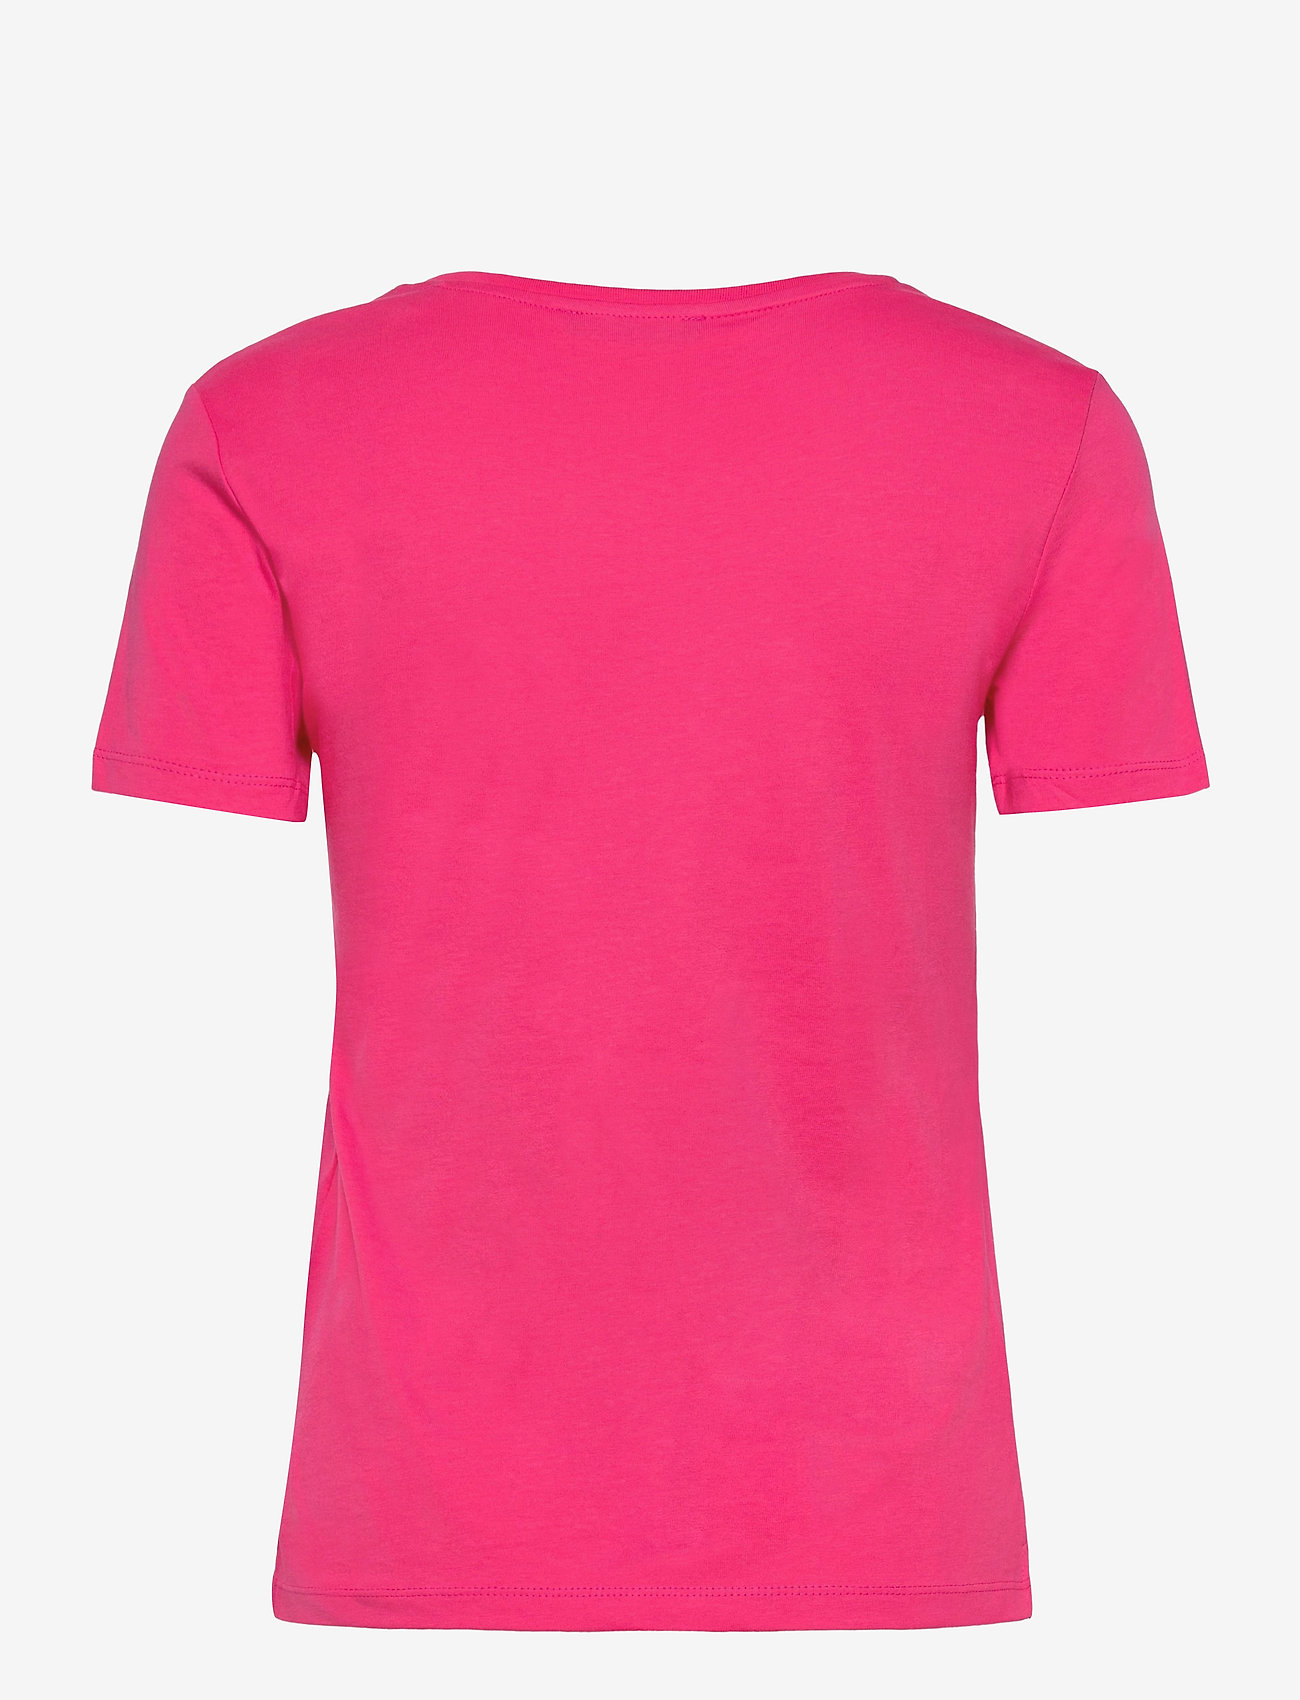 GUESS Jeans - SS CN G81 TEE - t-shirts - girly pink - 1